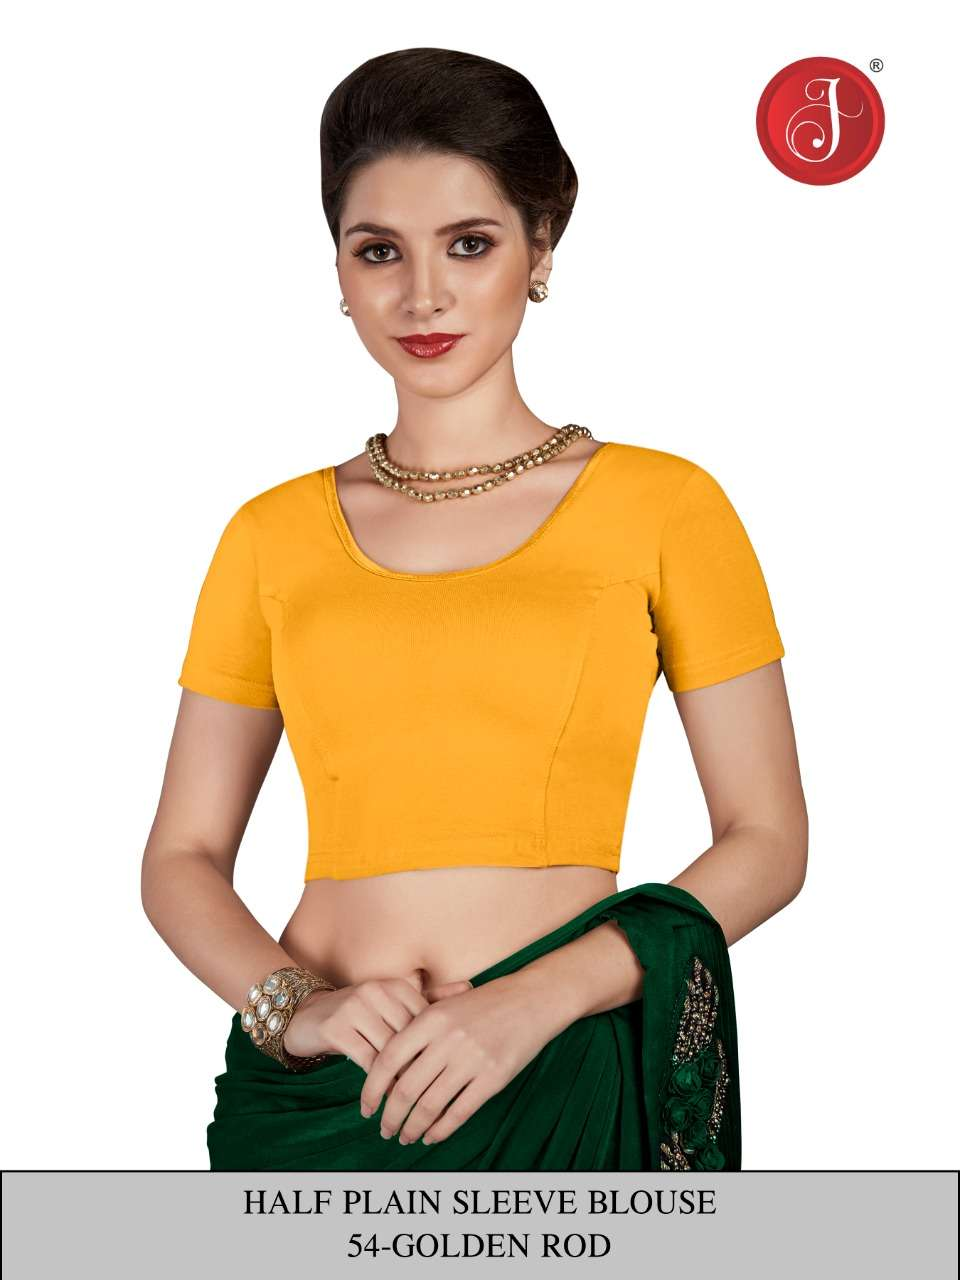 Jelite Plane half sleeve Cotton Ready To Wear Blouse Readymade Blouse Buy Online At Cheap Rate